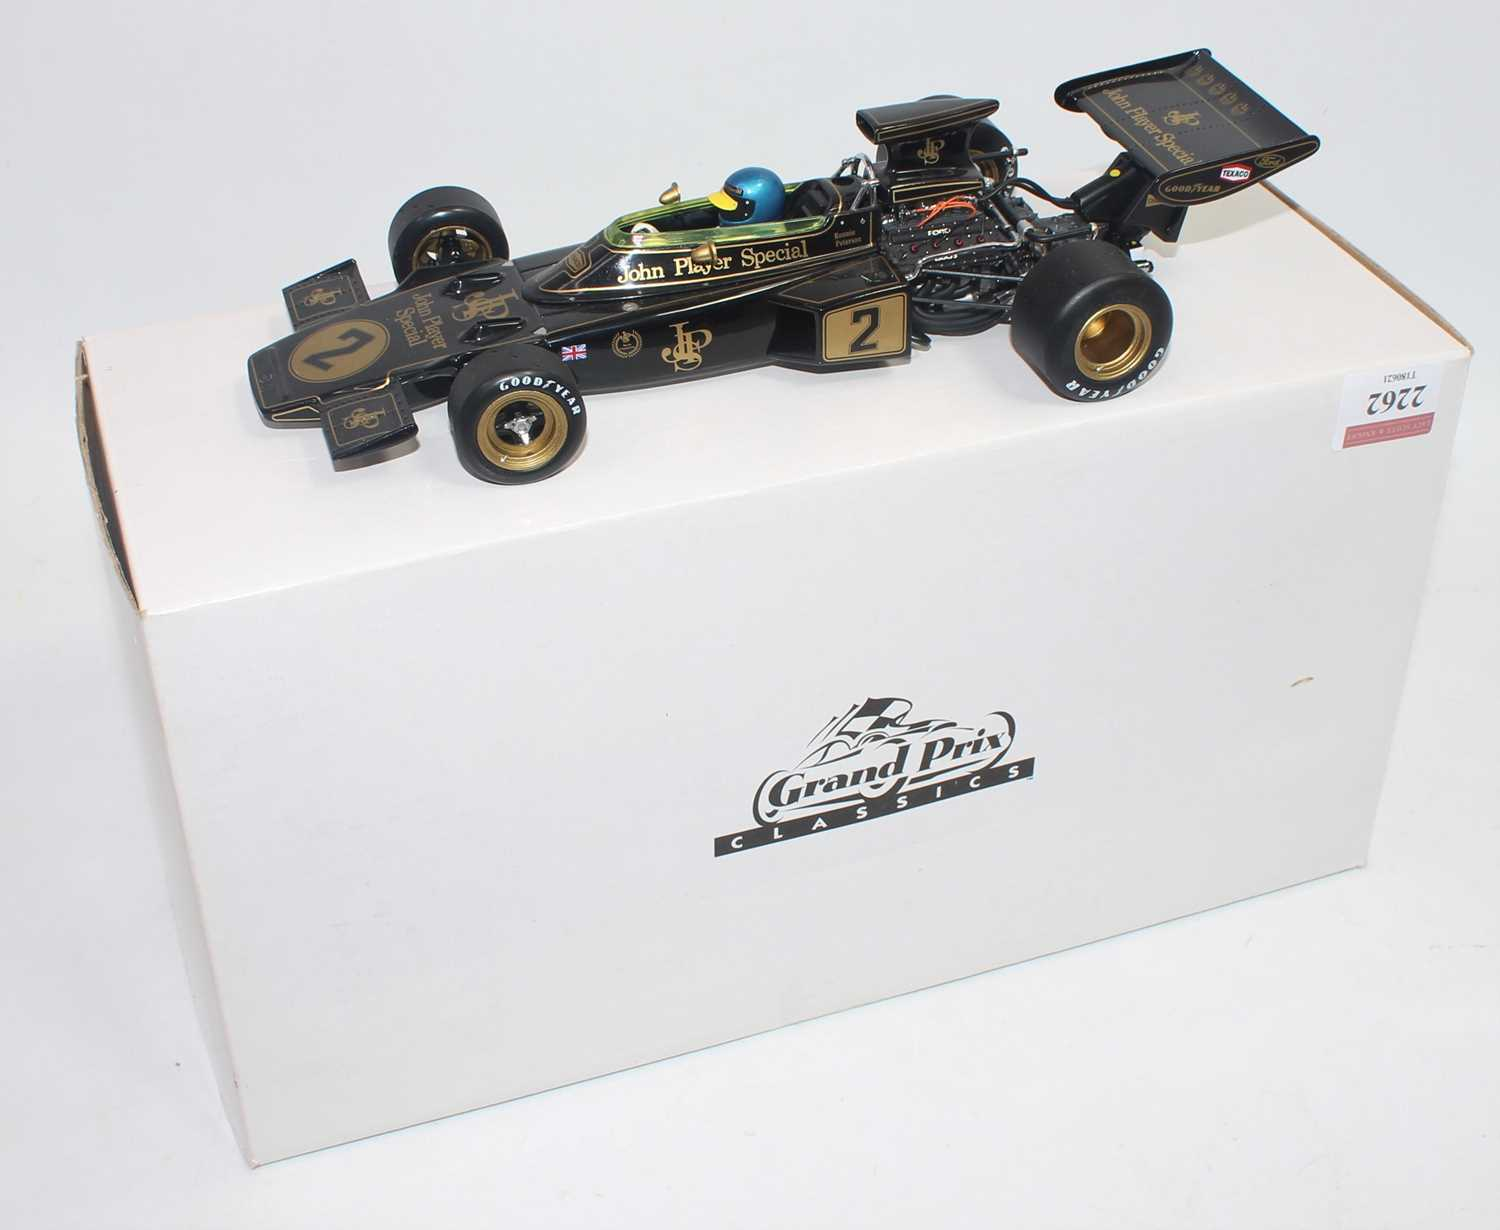 An Exoto Grand Prix Classics 1/18 scale model of a Lotus Ford Type 72D John Player Special Formula